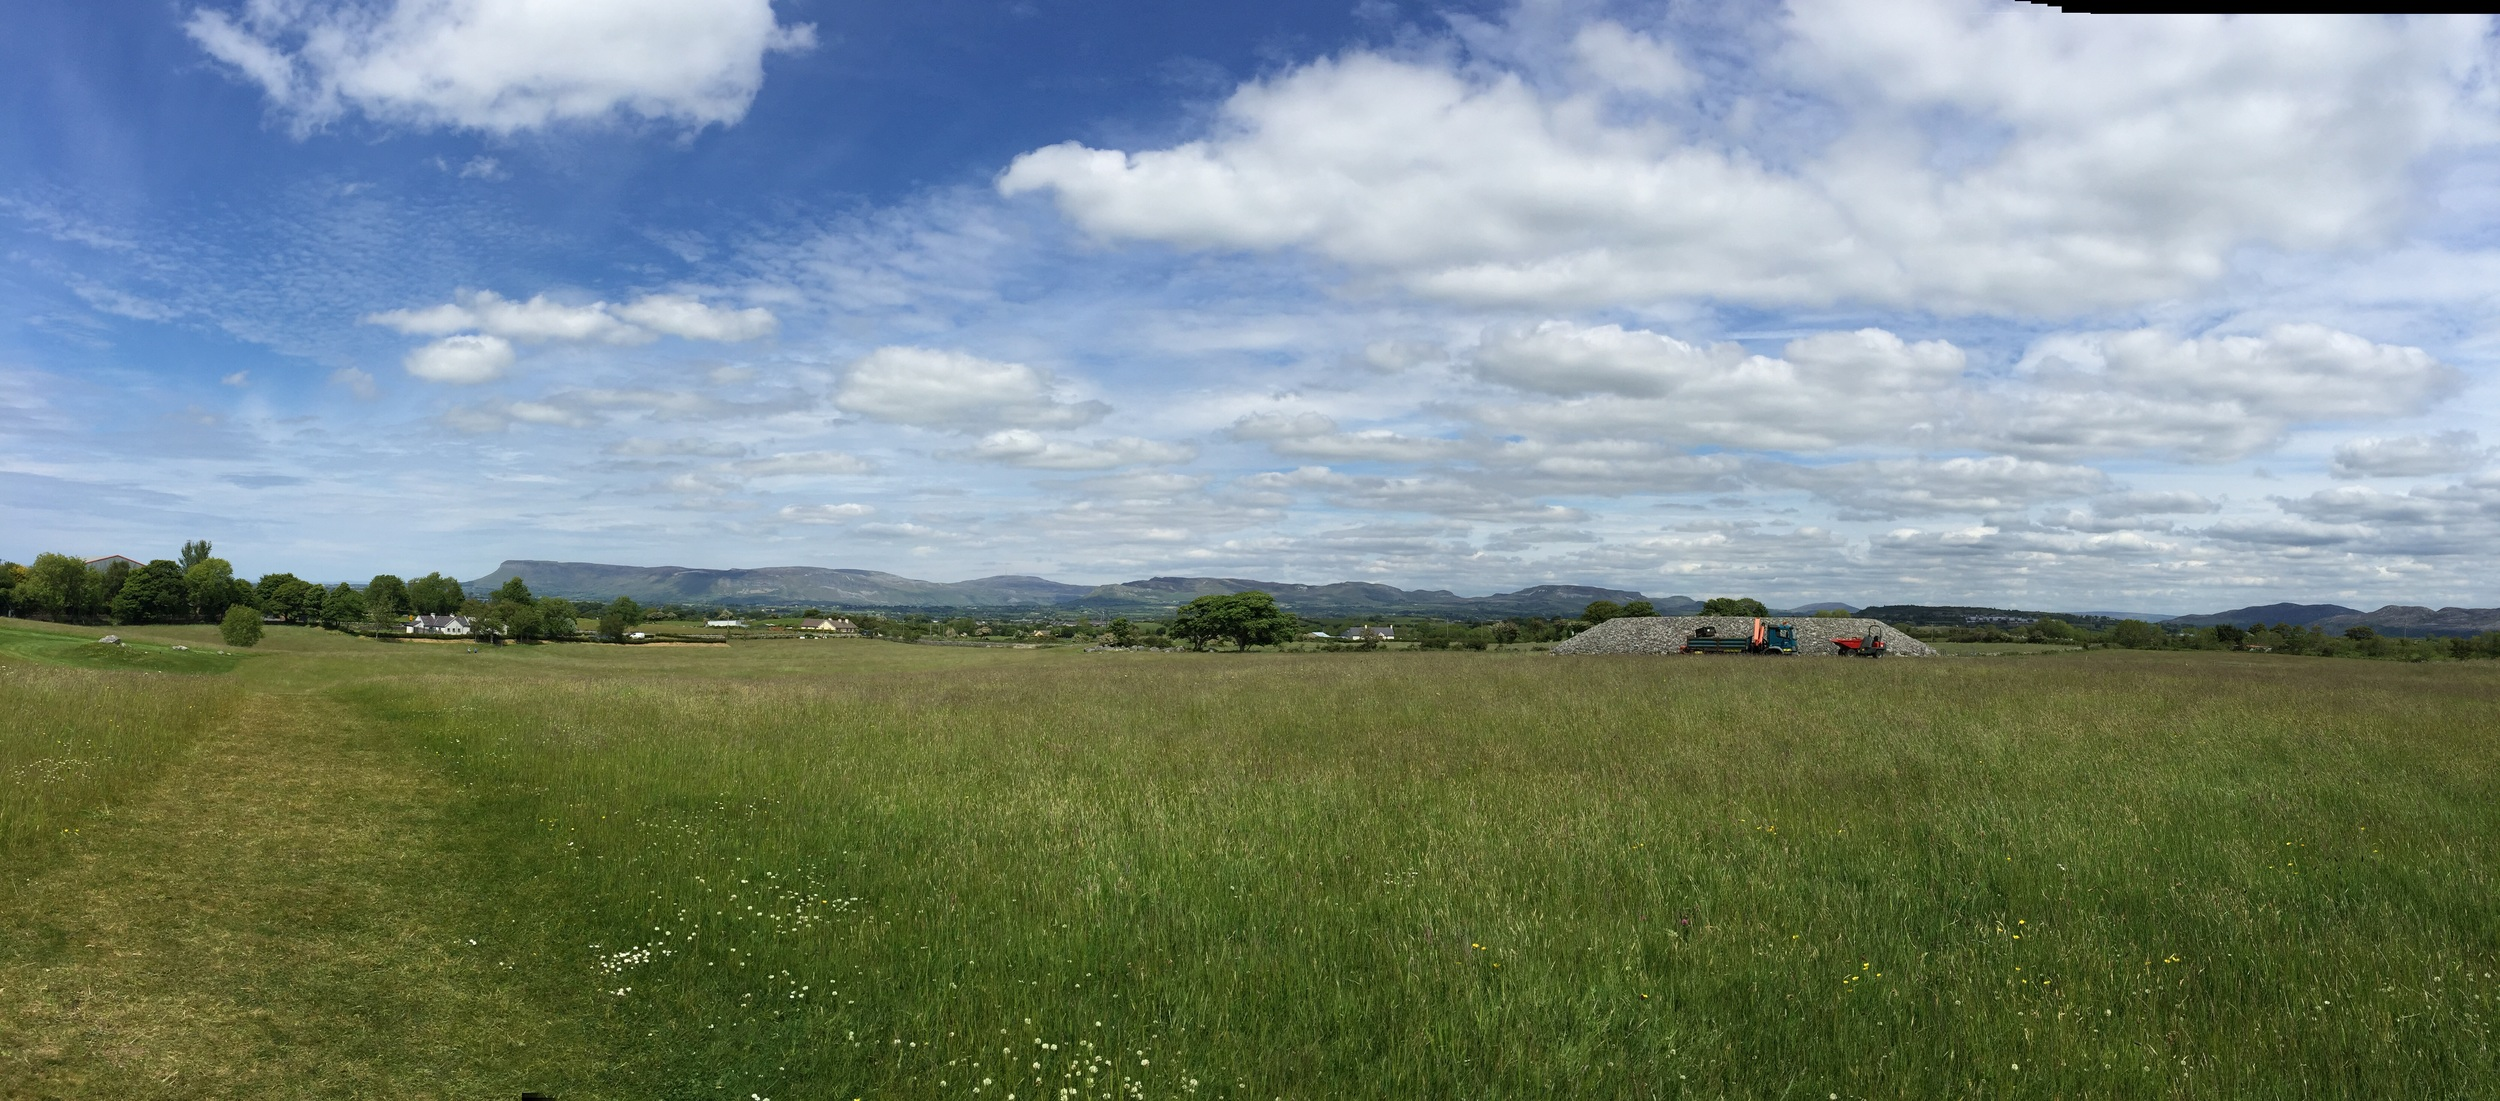 Again, in the middle of a field, like Hill of Tara, mountains dotting the distance.